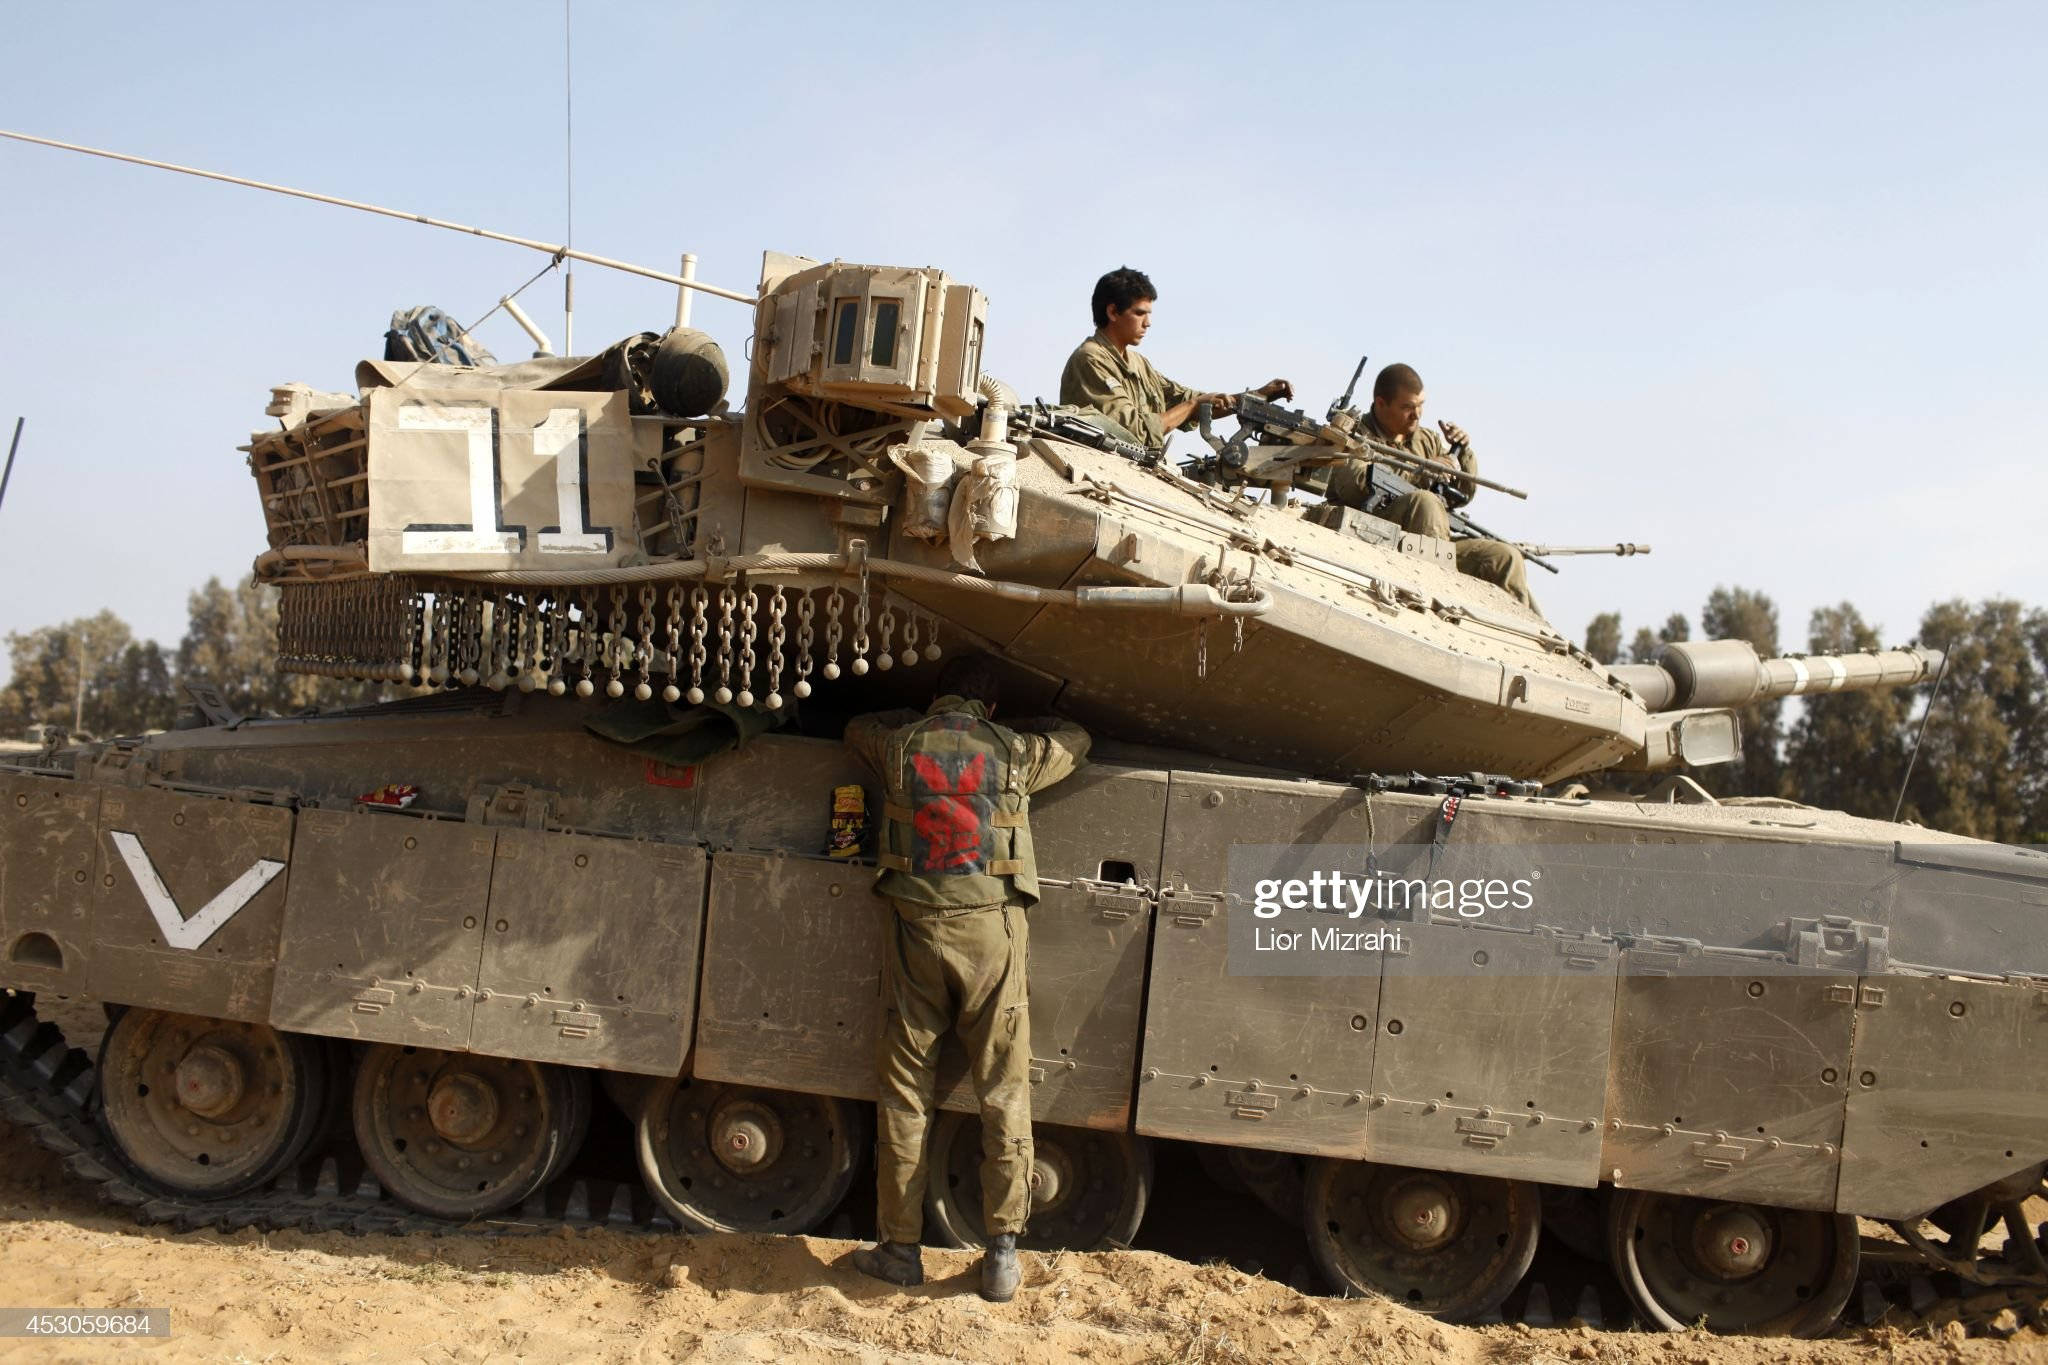 https://media.gettyimages.com/photos/israeli-soldiers-prepare-their-tanks-in-a-deployment-area-on-august-picture-id453059684?s=2048x2048